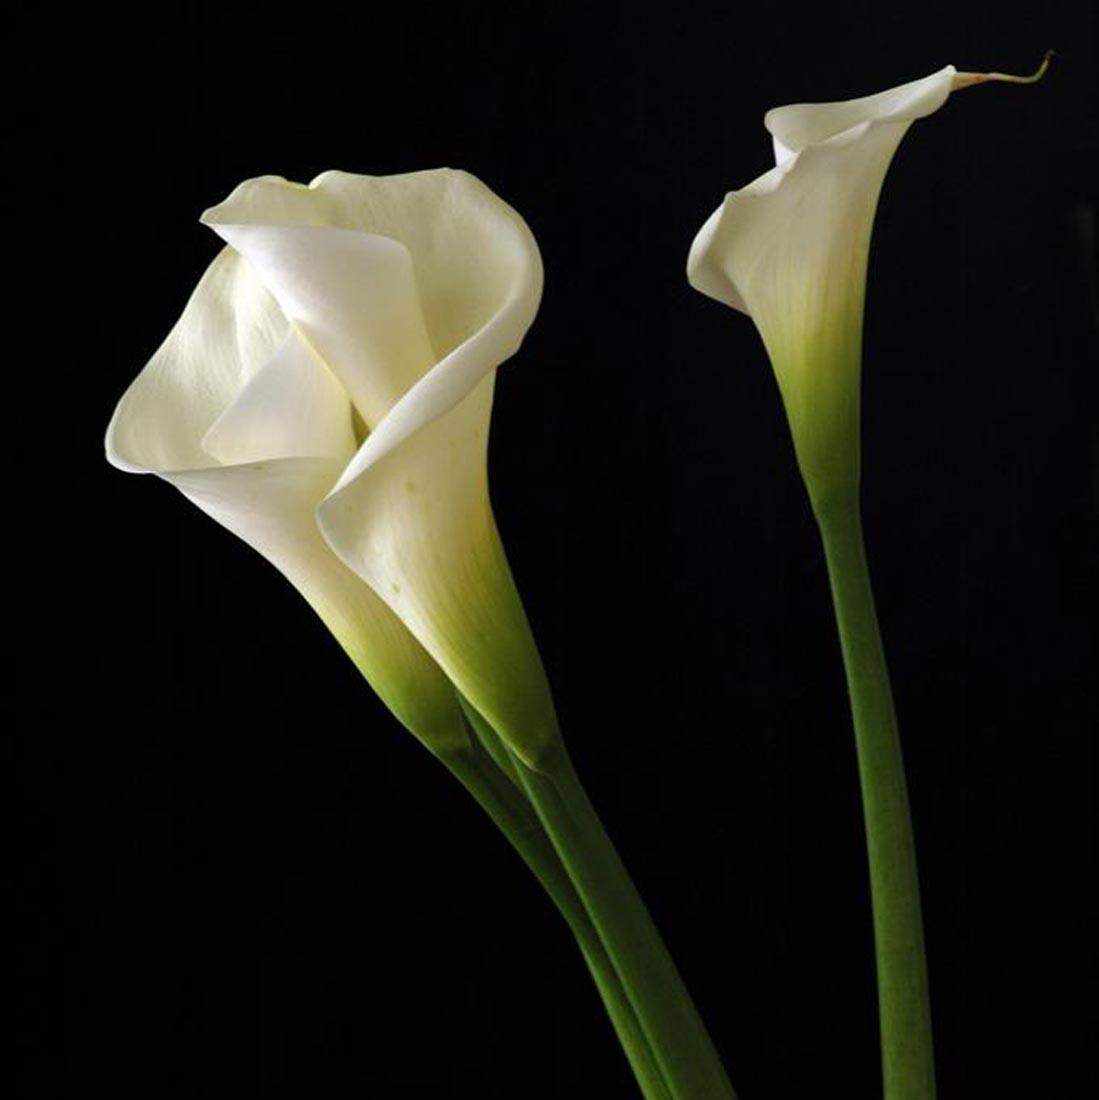 Celebration of life calla lily flowers hd wallpapers cool desktop pictures izmirmasajfo